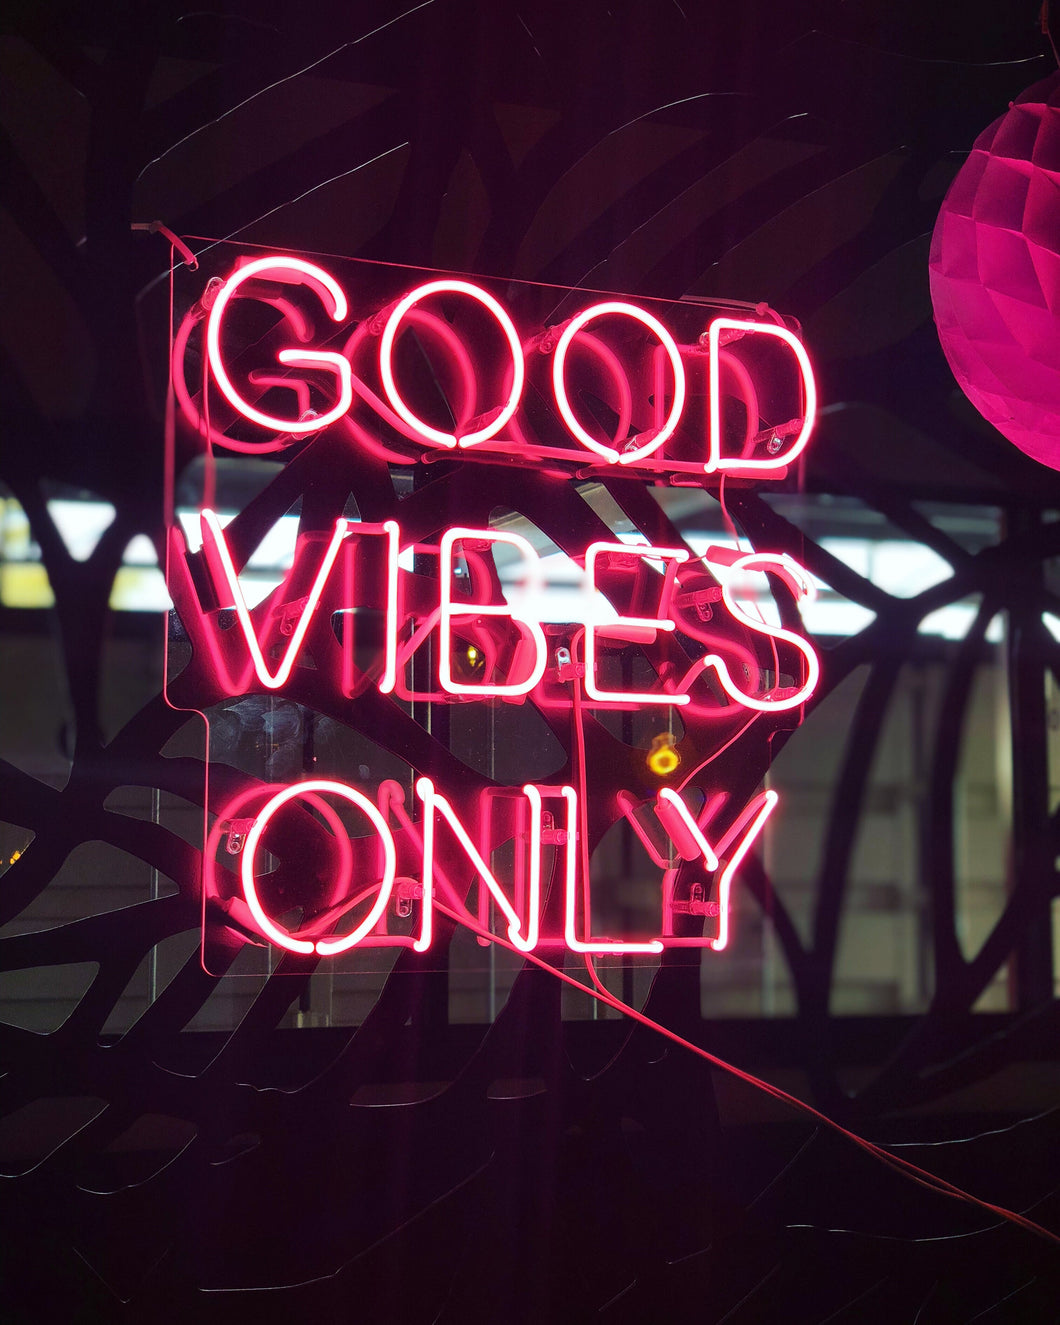 GOOD VIBES ONLY- Neon light hire!